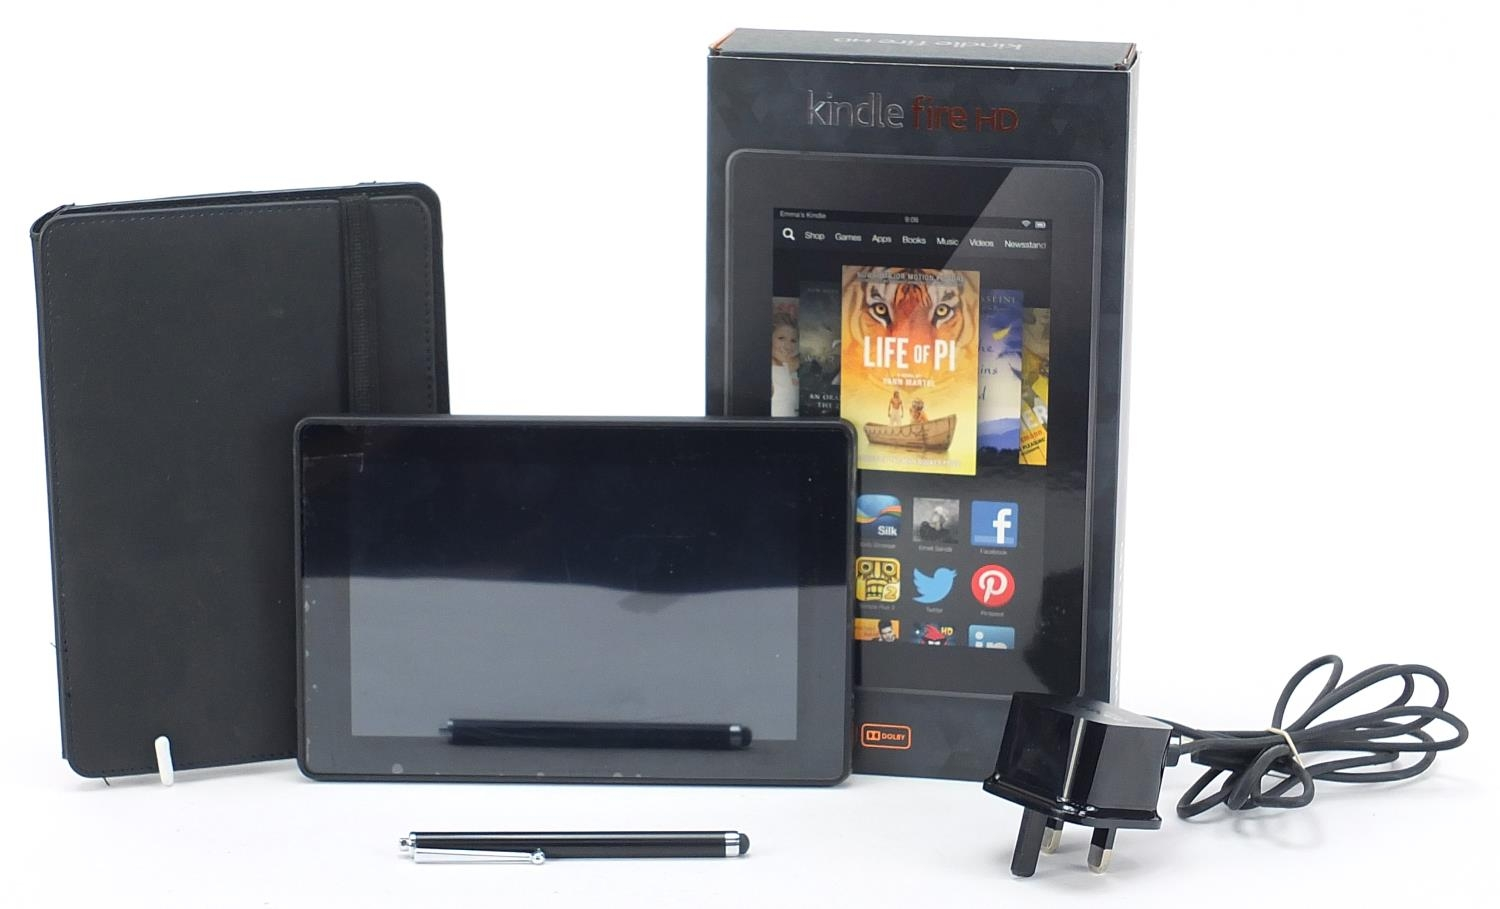 Amazon Kindle Fire HD with charger and box :For Further Condition Reports Please Visit Our - Image 2 of 6